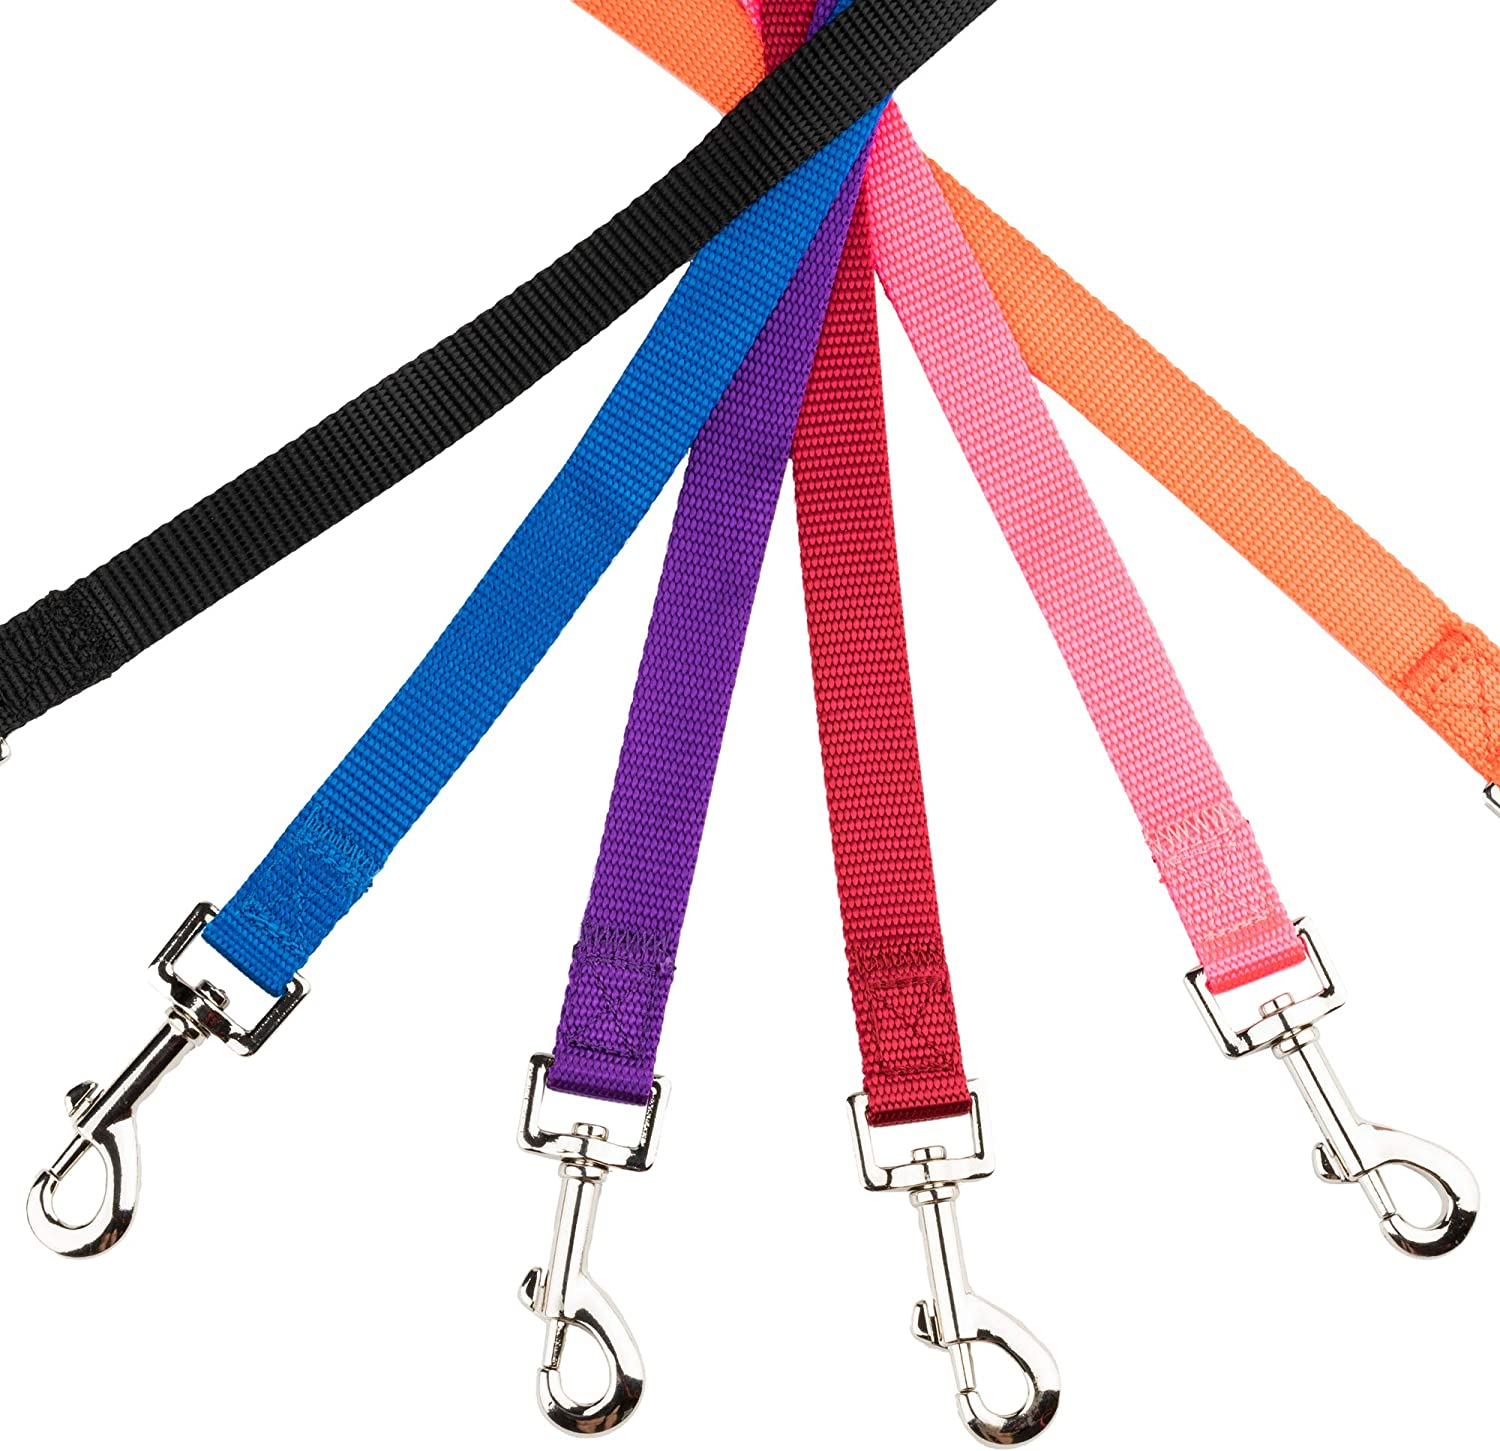 YUDOTE Nylon Dog Leads,Easy to Clean,Soft Lightweight Leash for Daily Walk with Puppies and Small Breeds Fluorescent Orange 1.5cm Wide 120cm Long